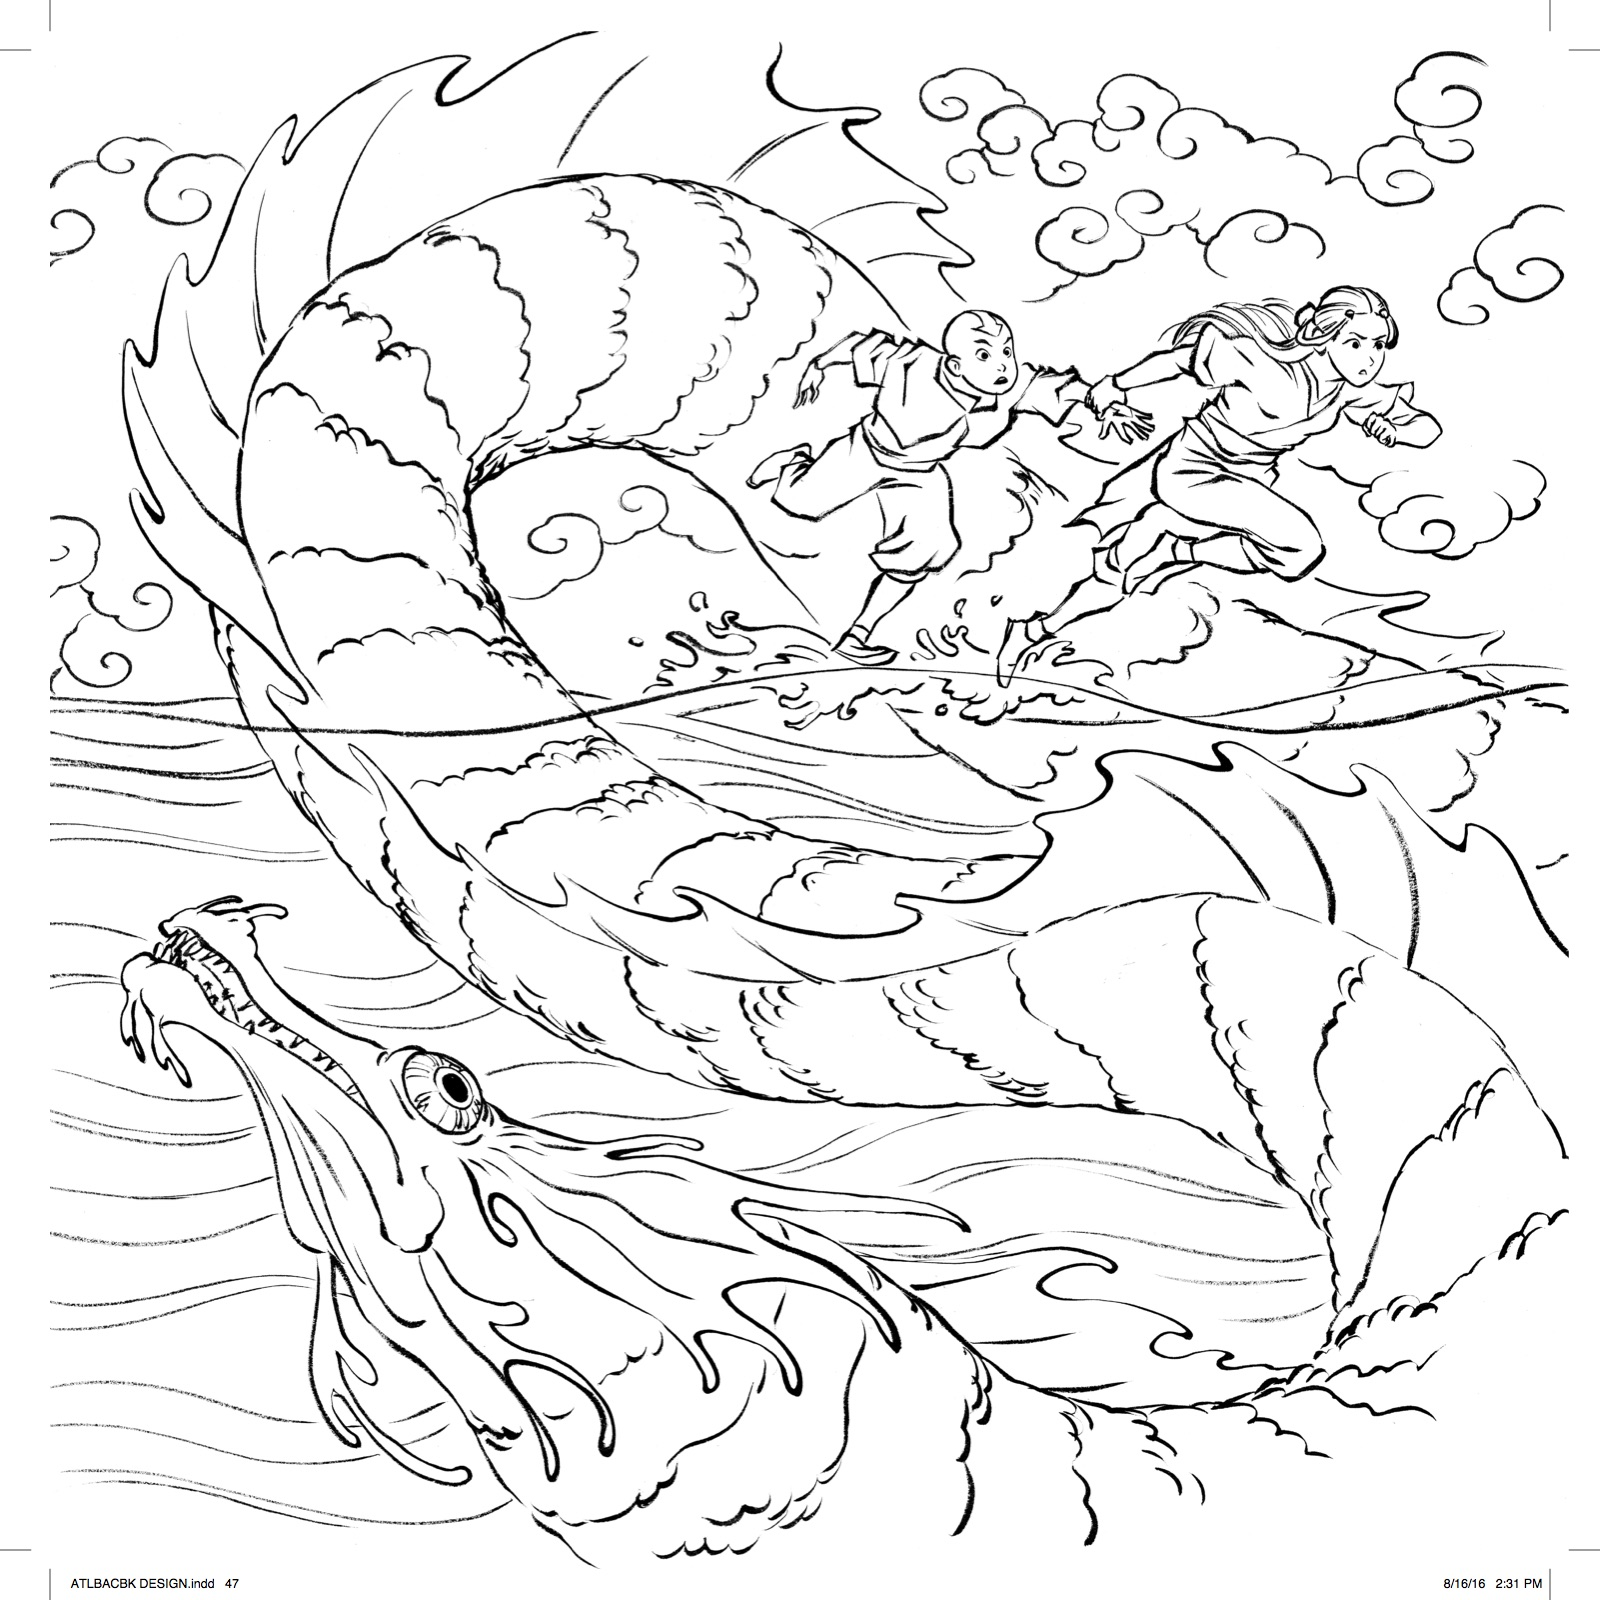 Planes 2 coloring pages - Avatar Month 2016 Coloring Contest